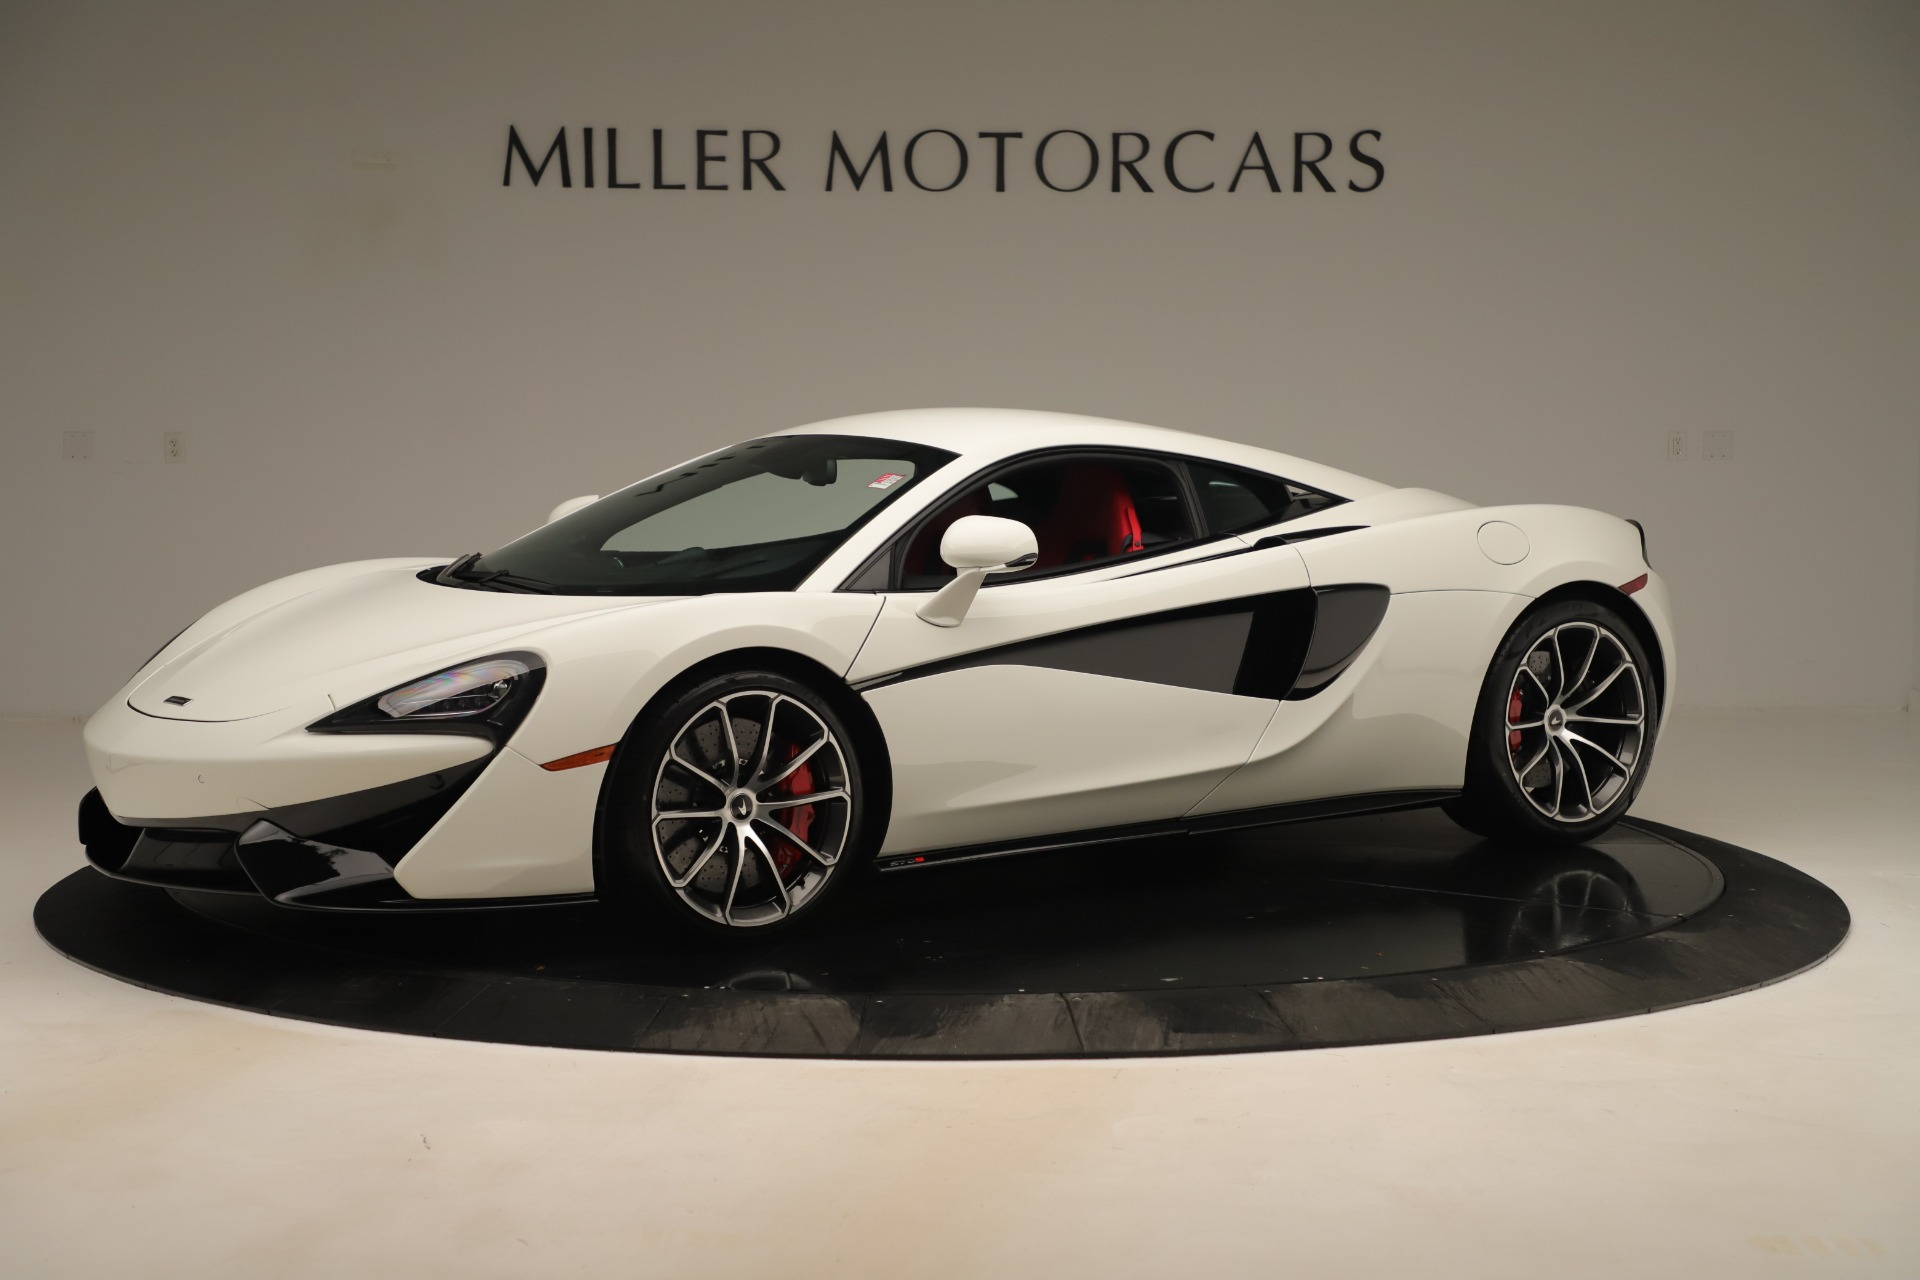 New 2020 McLaren 570S Coupe for sale $215,600 at Maserati of Westport in Westport CT 06880 1